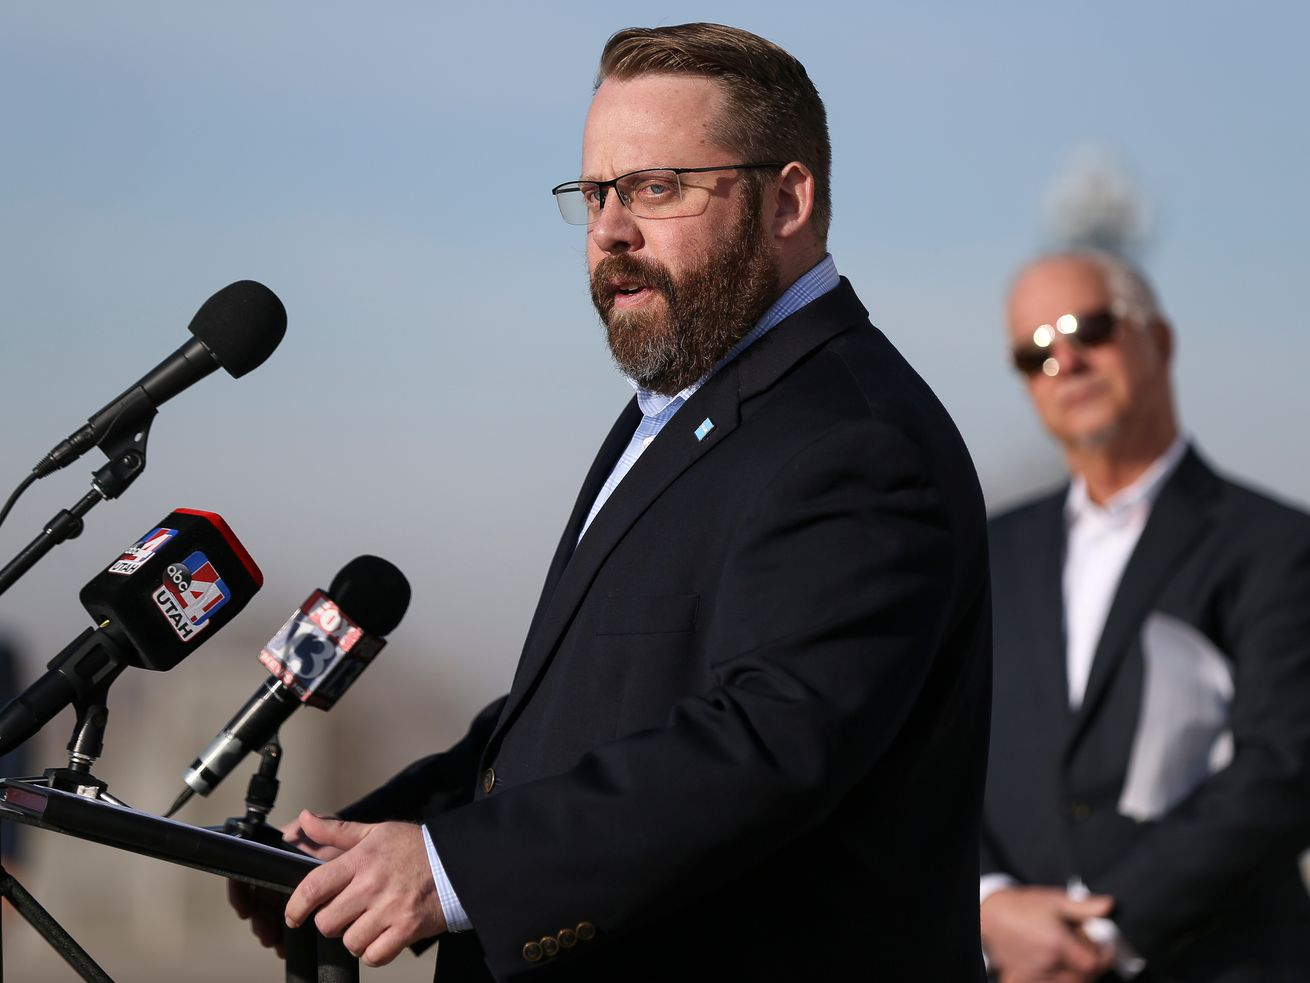 Thom Carter, executive director of the Utah Clean Air Partnership, speaks at a press conference reintroducing Utah Transit Authority's route 500 Capitol Connector at the Capitol in Salt Lake City on Wednesday, Jan. 17, 2018. Carter, a Republican, is considering a run for the 4th Congressional District seat held by Utah's only Democrat in Congress, Rep. Ben McAdams.